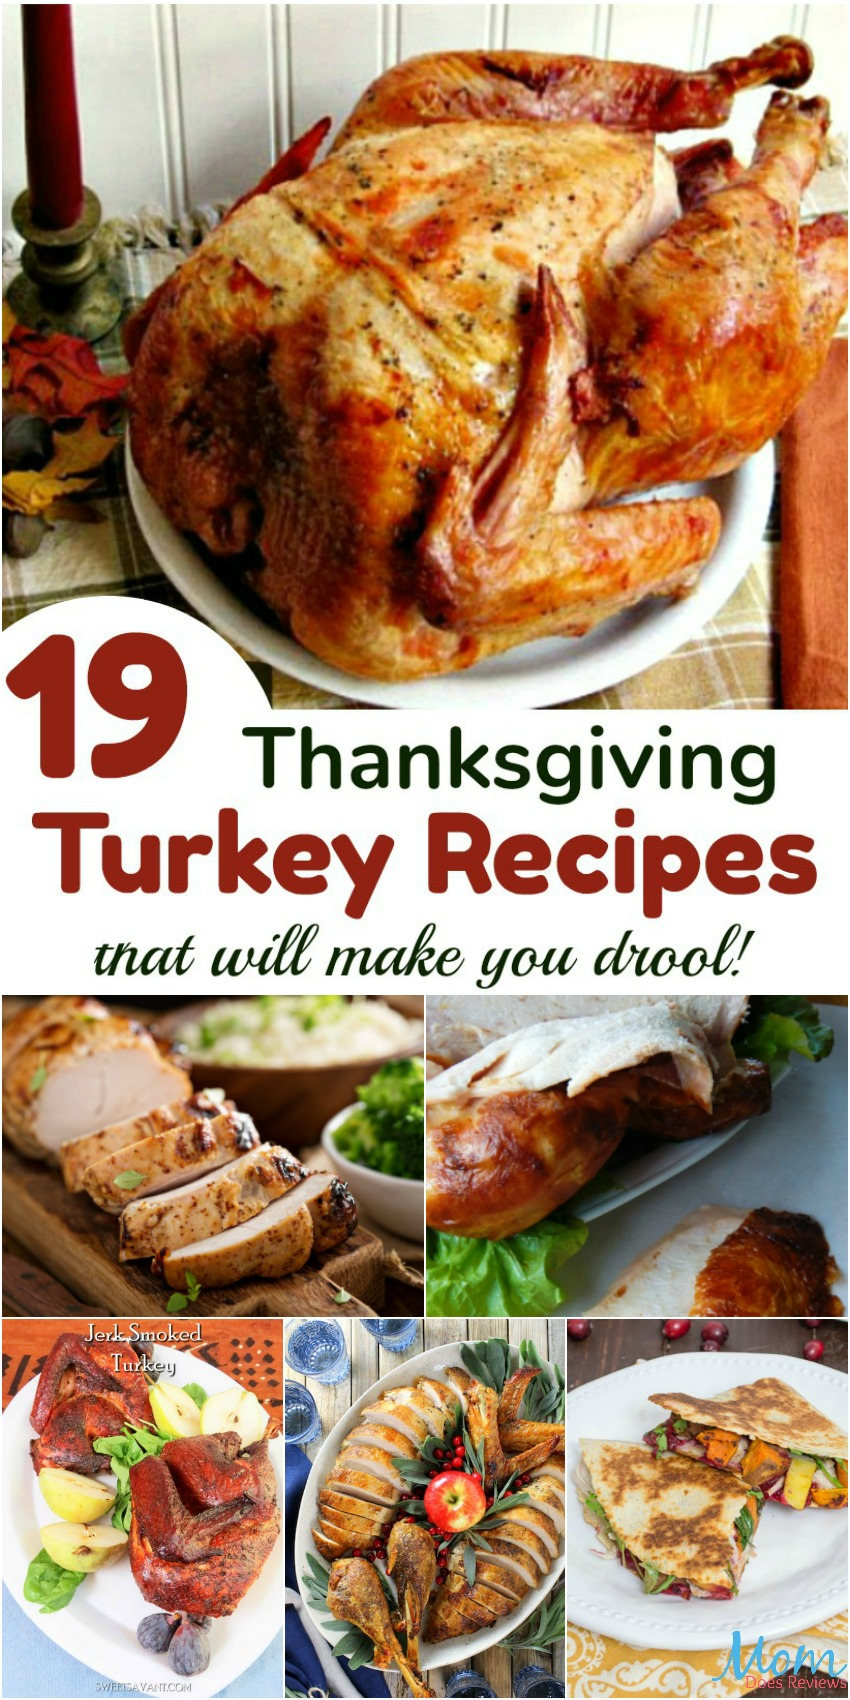 19 Thanksgiving Turkey Recipes that will make you drool banner